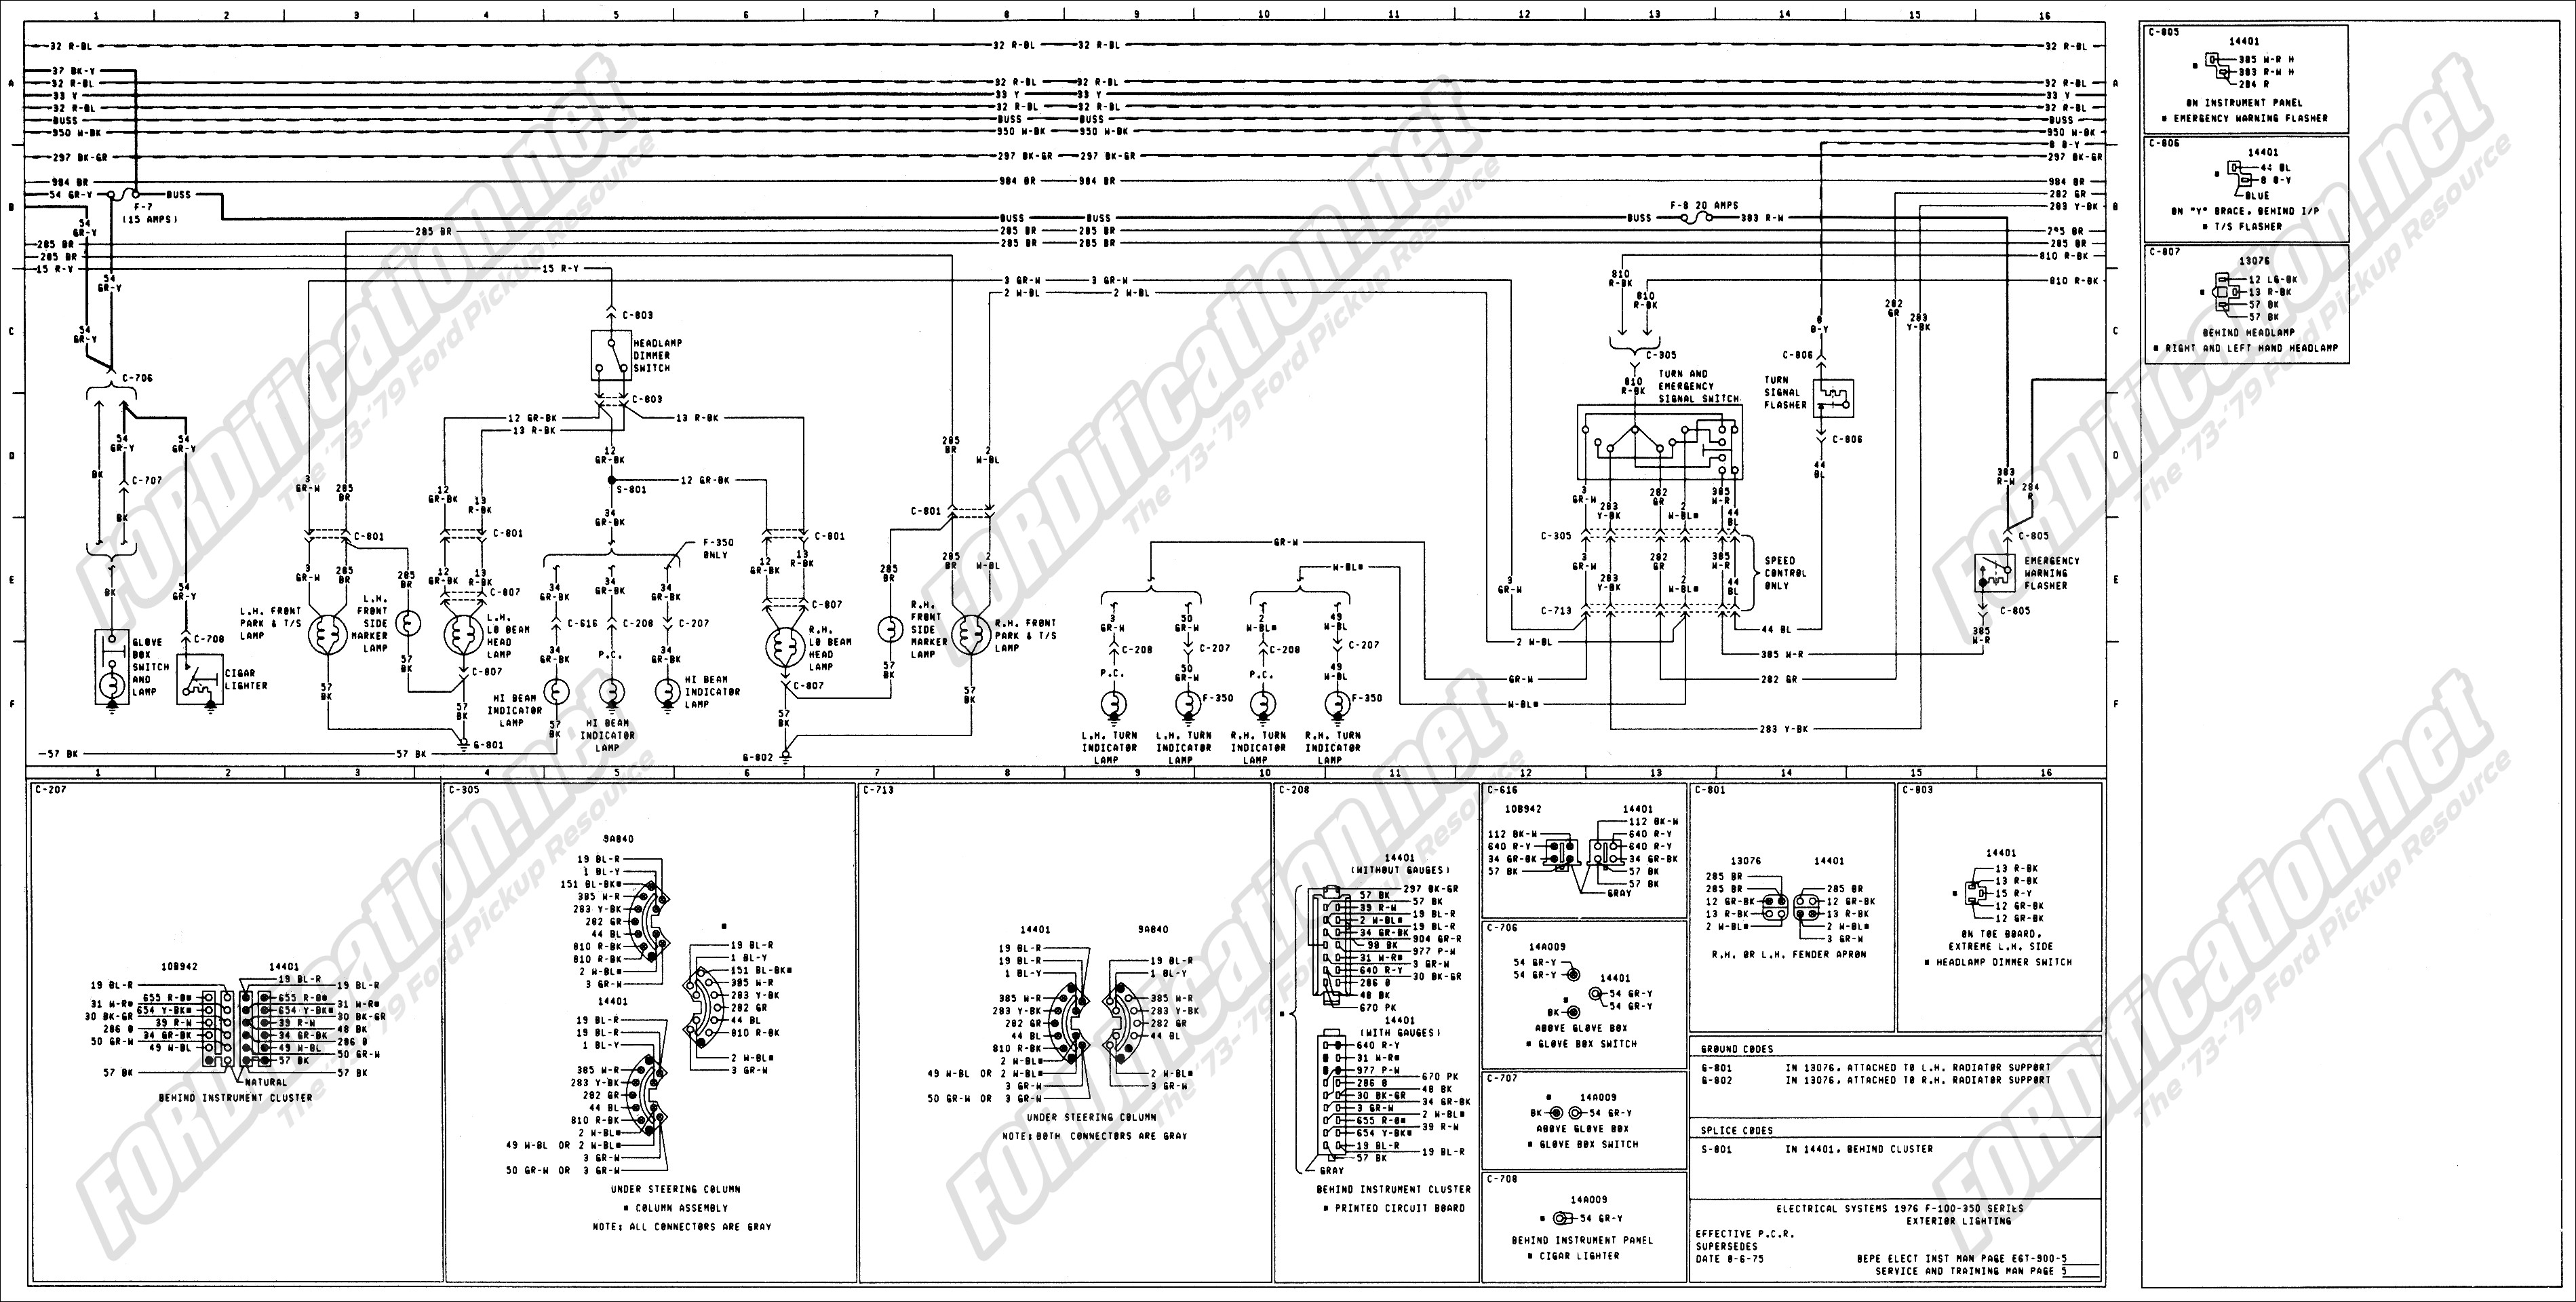 Ford Fusion Engine Diagram 77 ford F250 Wiring Diagram Wiring Info • Of Ford Fusion Engine Diagram ford Econoline Wiring Diagram Also 1966 ford Thunderbird Wiring